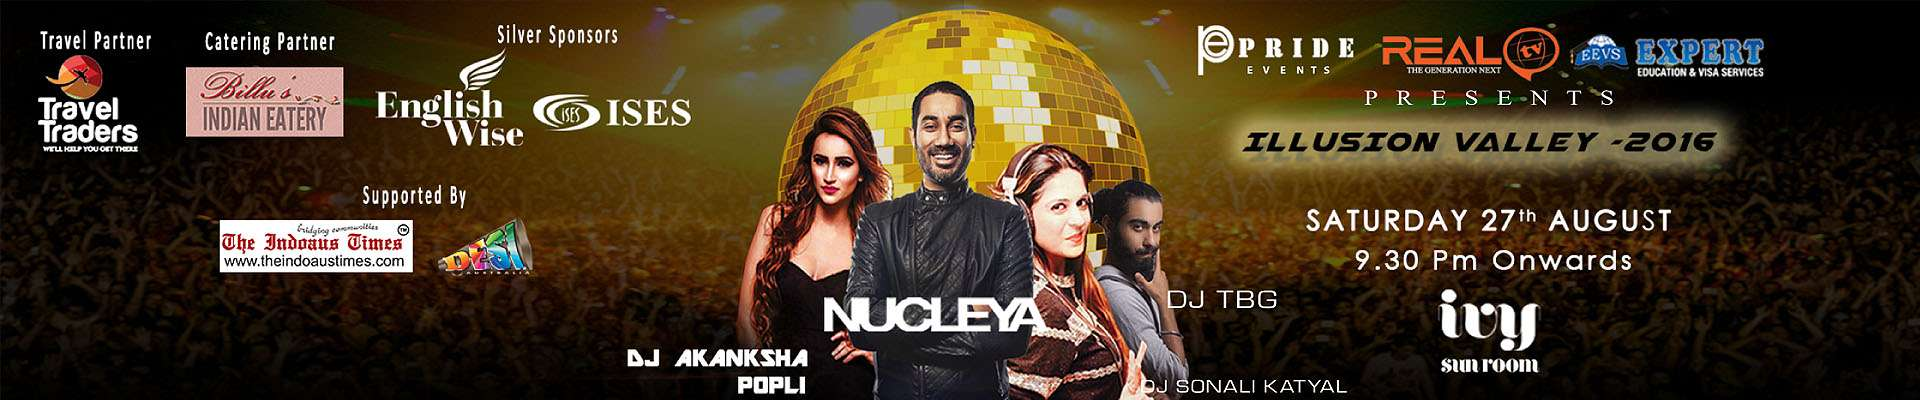 Nucleya Live In Sydney - Illusion Valley - 2016